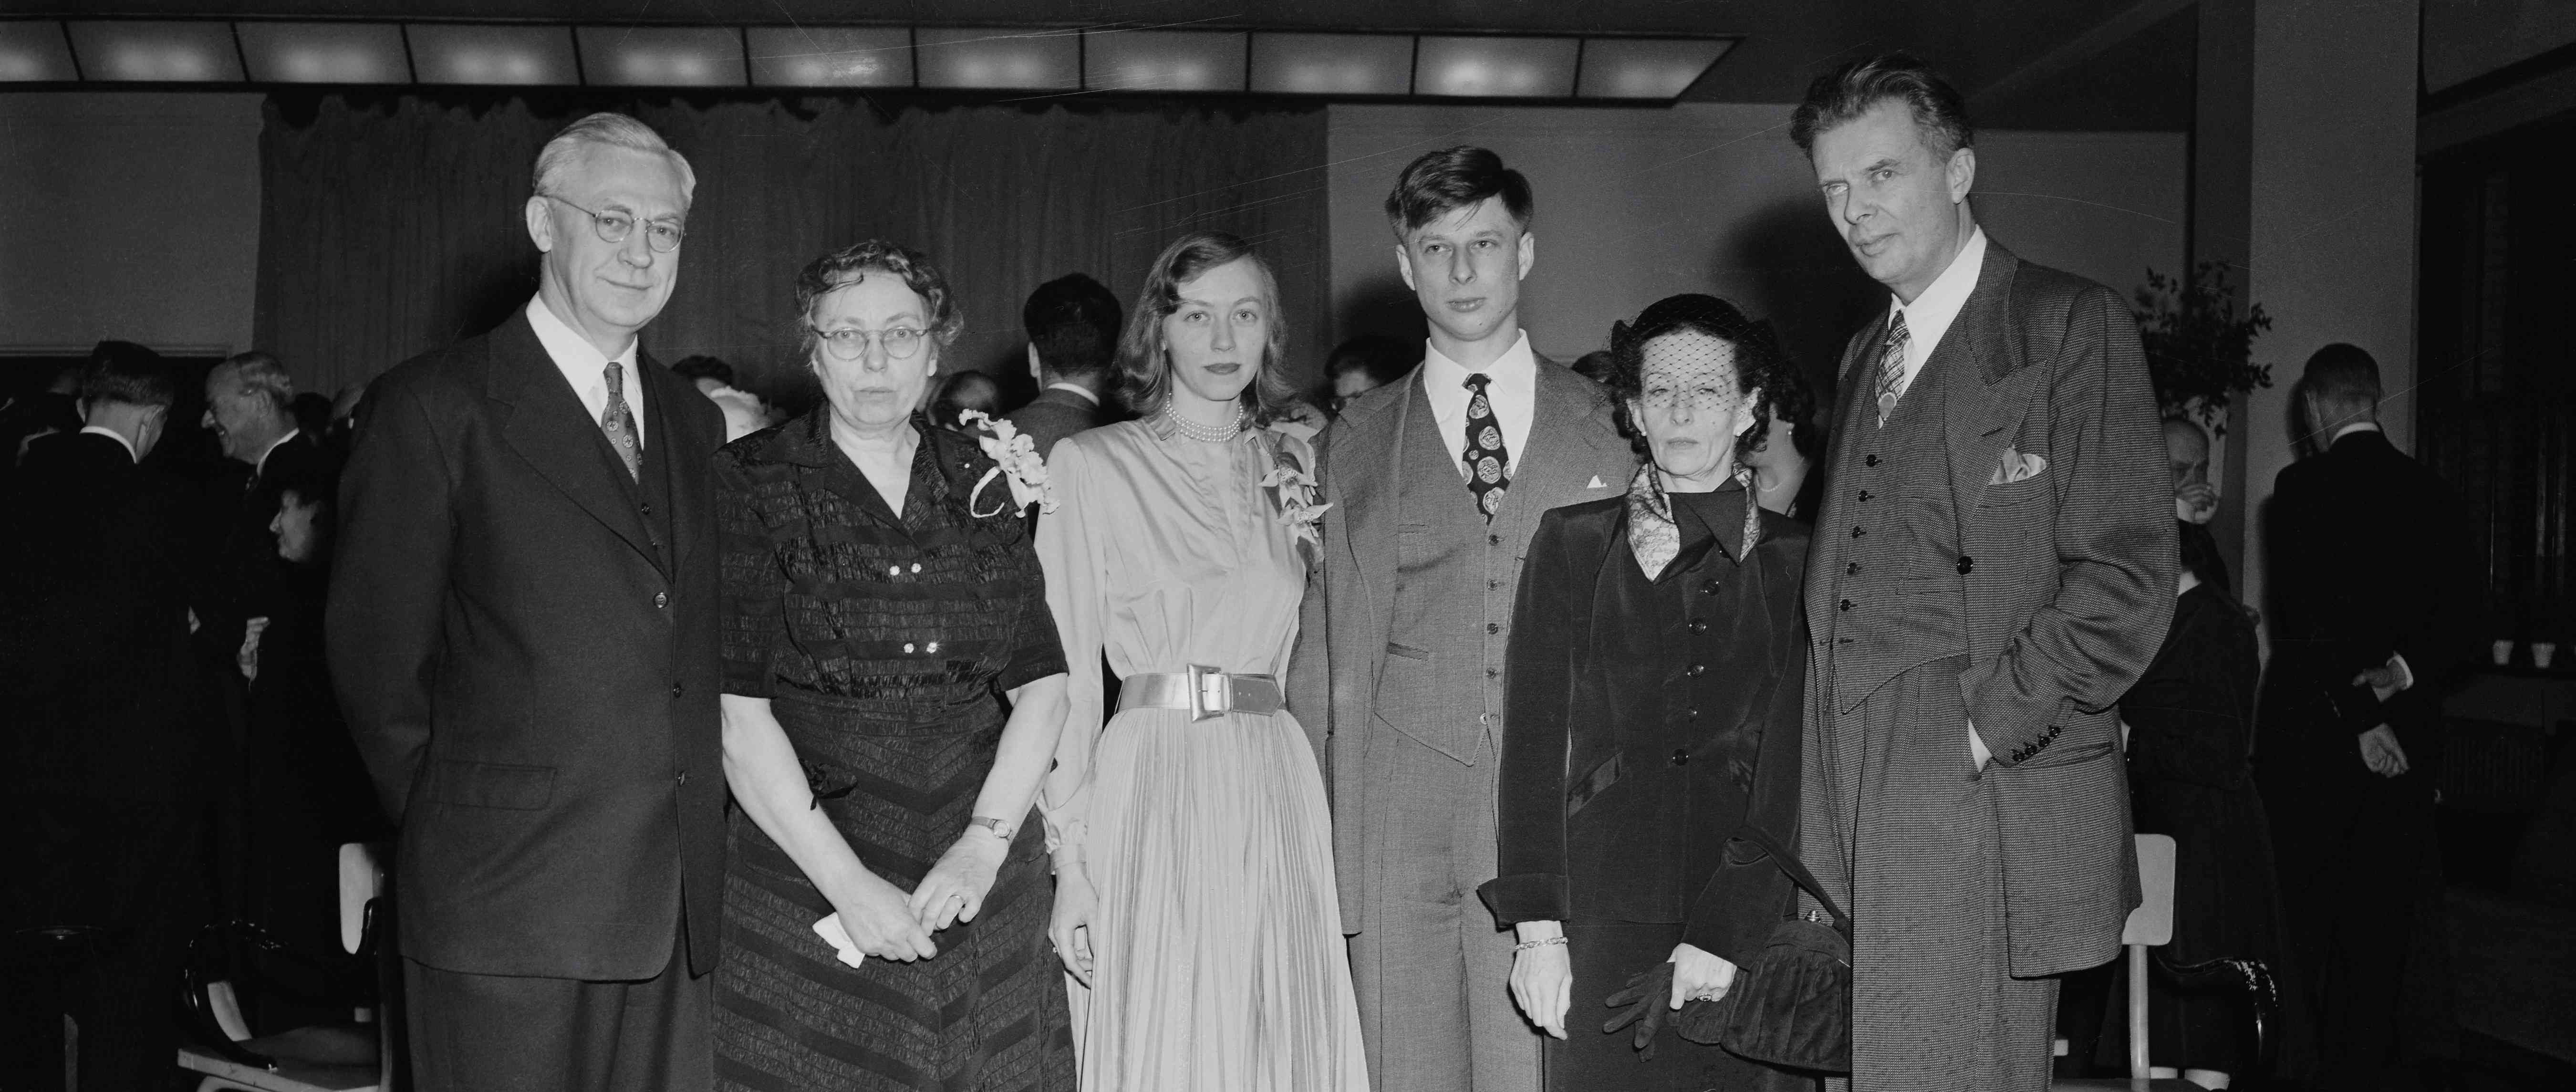 Aldous Huxley and Family